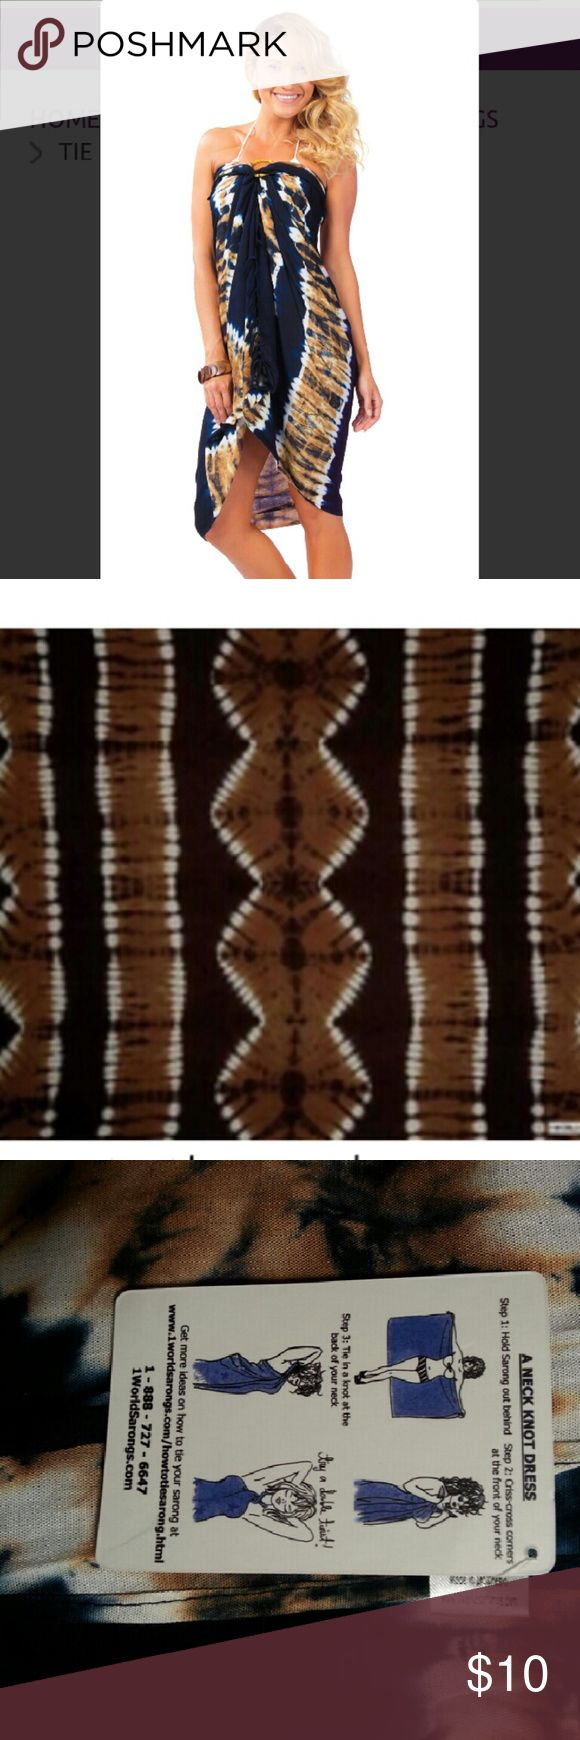 "1 World Sarong Tie Die ""JUNGLE BROWN"" Welcome to the jungle. Sarong measure approximately 66 x 44 inches (168 cm x 112 cm) on fringed lightweight rayon. Please note color, size, and design will vary due to the handmade nature of this item. New never worn, with tags, original packaging. ONE WORLD Accessories Scarves & Wraps"